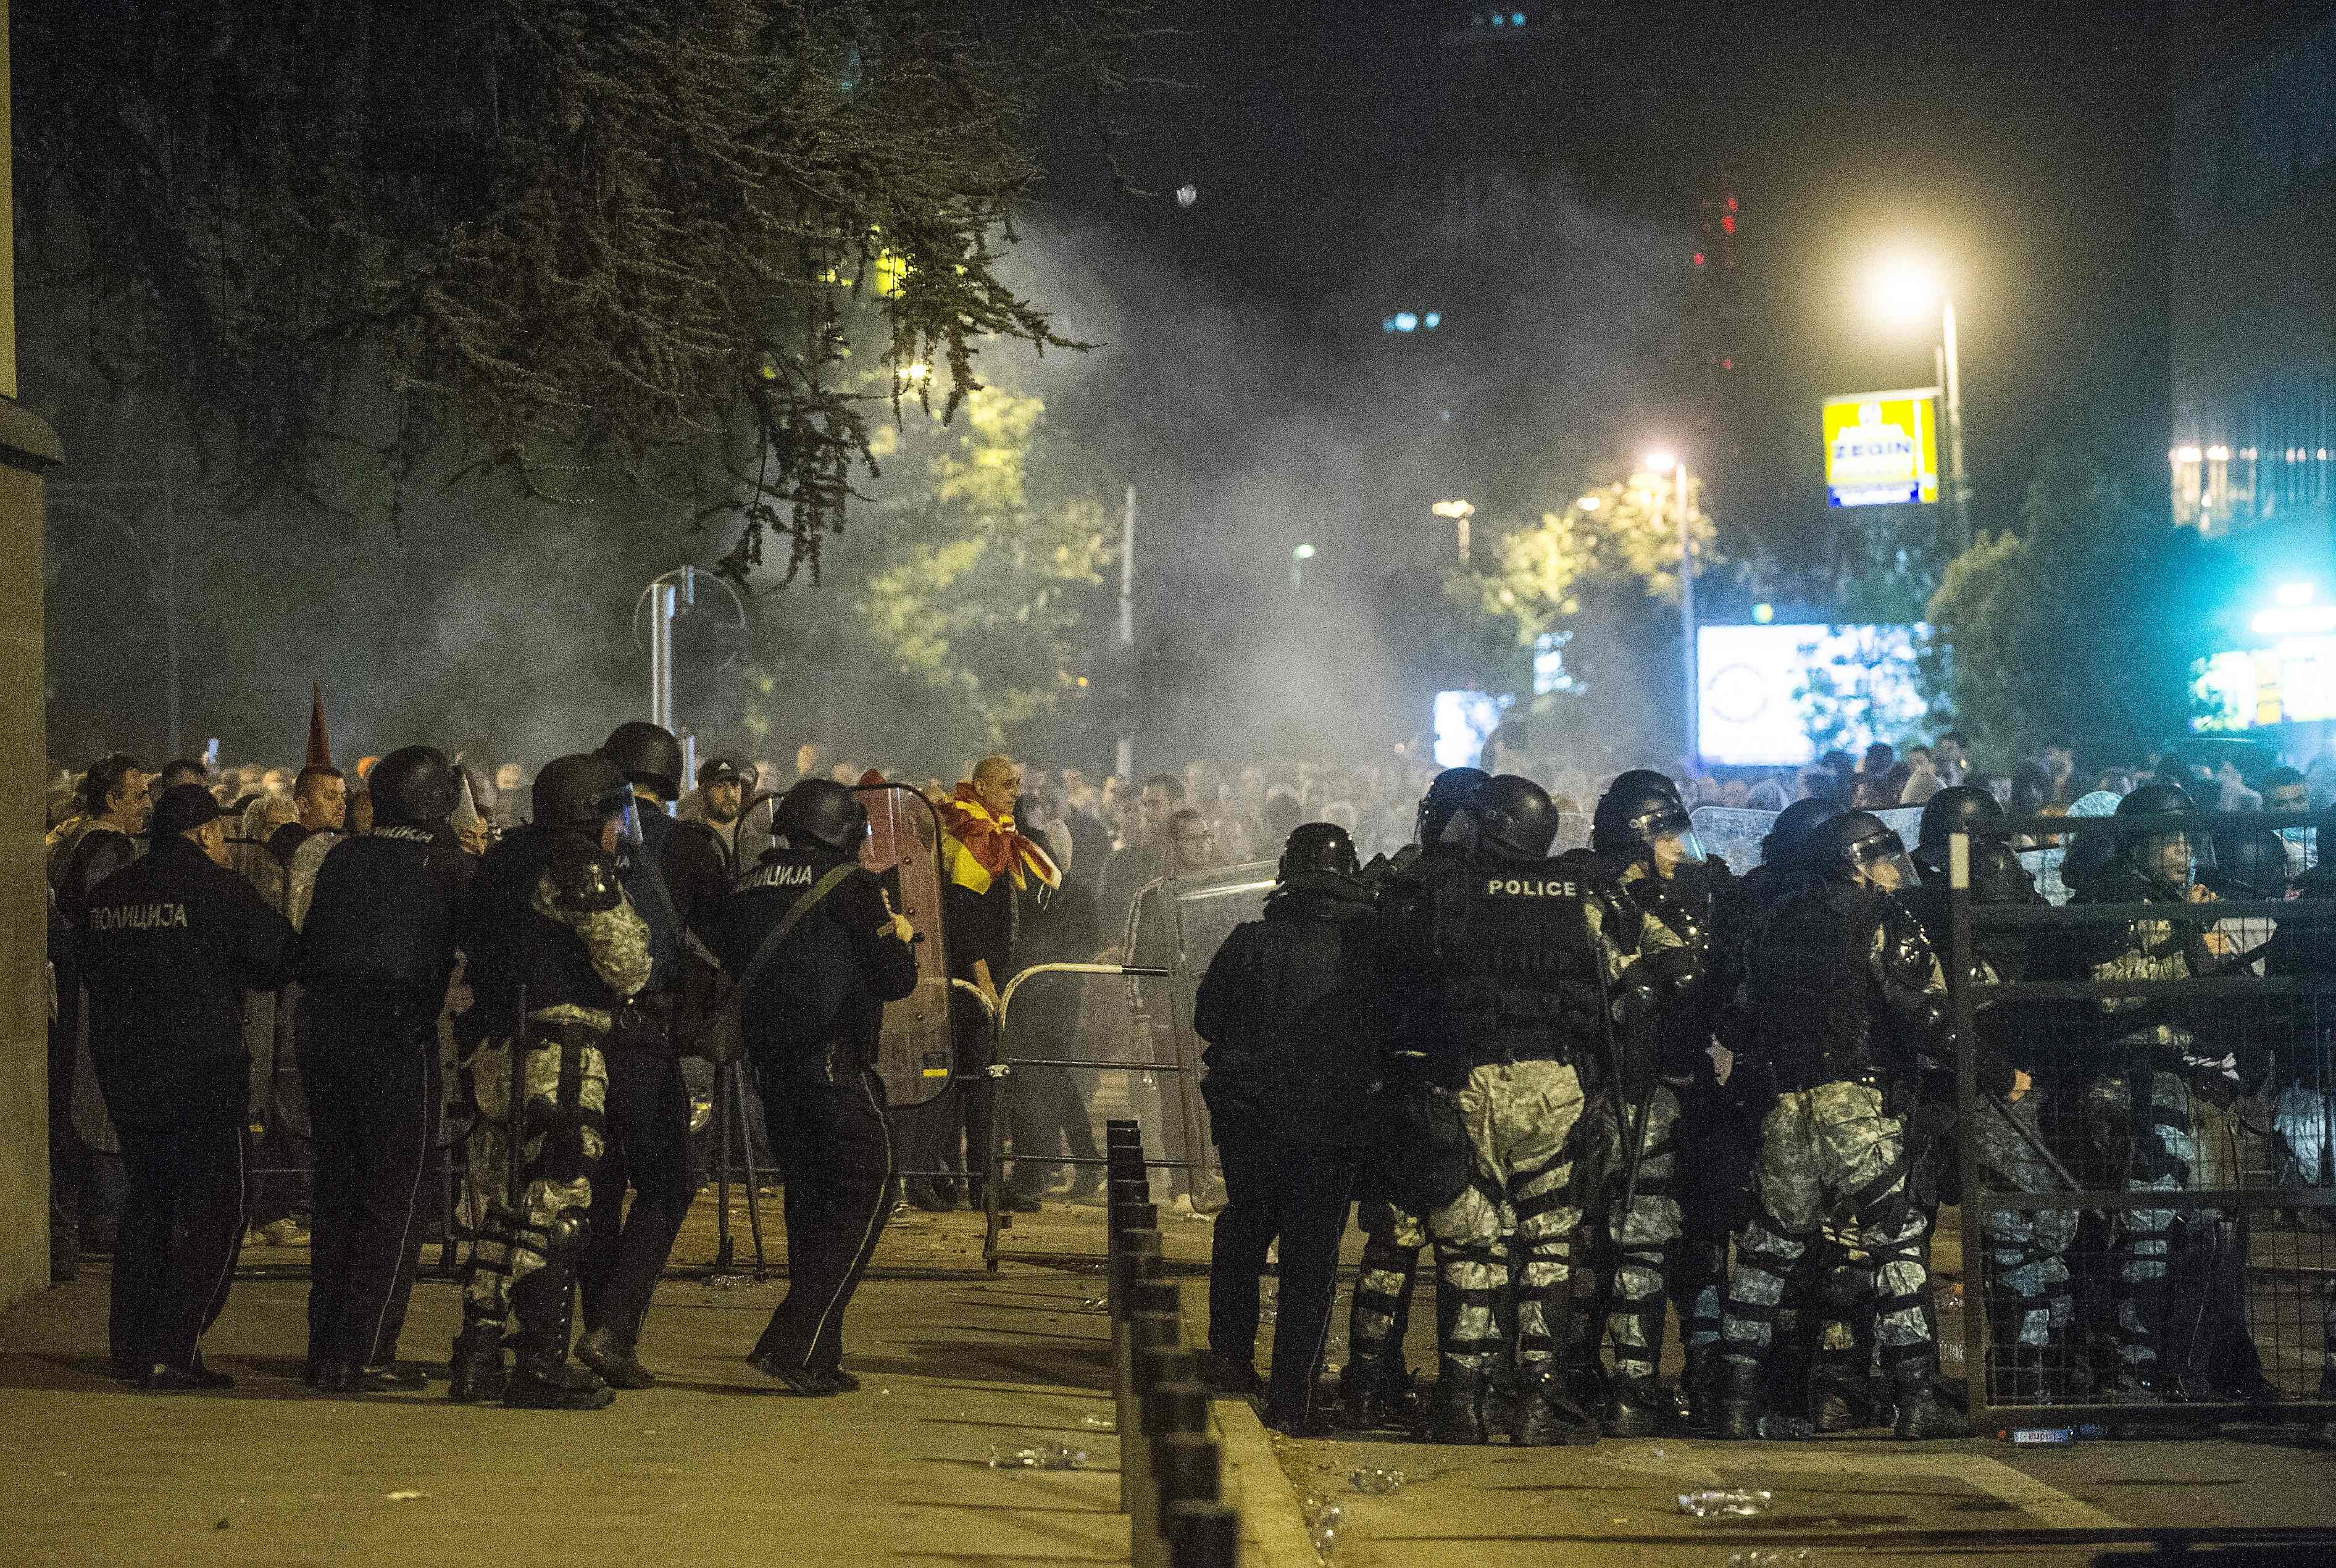 Police face protesters gathered outside Macedonia's parliament after the governing Social Democrats and ethnic Albanian parties voted to elect an Albanian as parliament speaker in Skopje on April 27, 2017. Macedonia's opposition leader was among at least 10 people injured in parliament on April 27 after protesters stormed the building following an allegedly unfair vote for a parliamentary speaker, witnesses and local media reported. The violence erupted after around 100 protesters supporting the rival VMRO-DPMNE party entered parliament waving Macedonian flags and singing the national anthem. / AFP PHOTO / Robert ATANASOVSKI / TT / kod 444